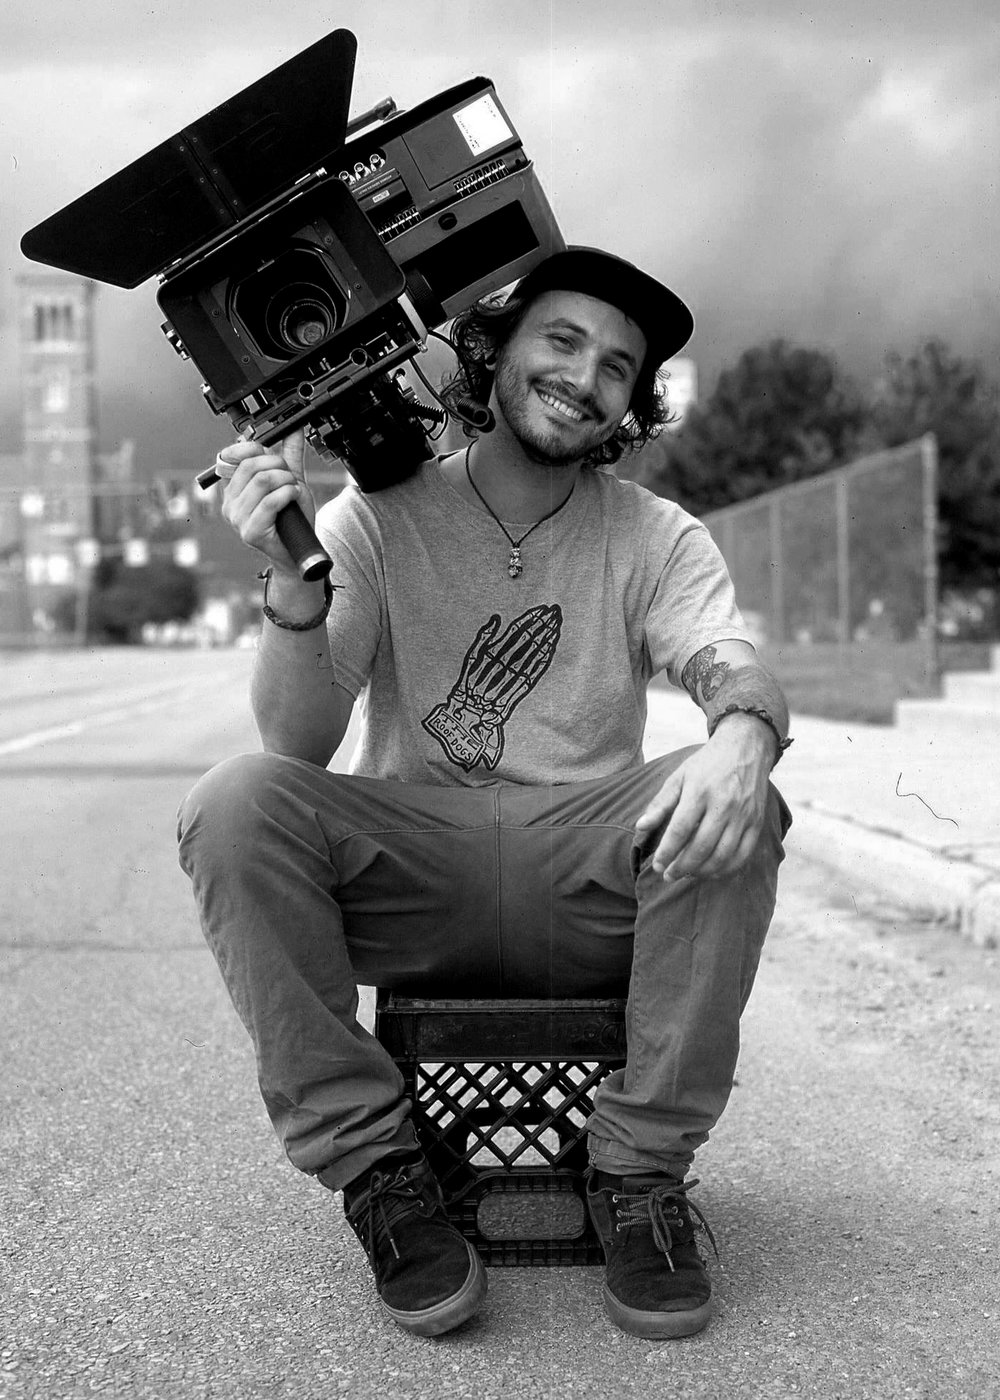 Ori Segev - Founder/Director of Photography Known for his laid back attitude, cinematography and pristine color grading, Ori knows how to draw your eyes to the frame. He has shot and directed countless videos spanning multiple genres. His DIY style of cinema welcomes new and adventurous ideas and never steps away from a challenge. Since graduating at Denison University in 2014 Ori has returned to speak to students about color grading, cinematography and animation. His love for filmmaking has given him the opportunity to travel all over the world creating visual content.